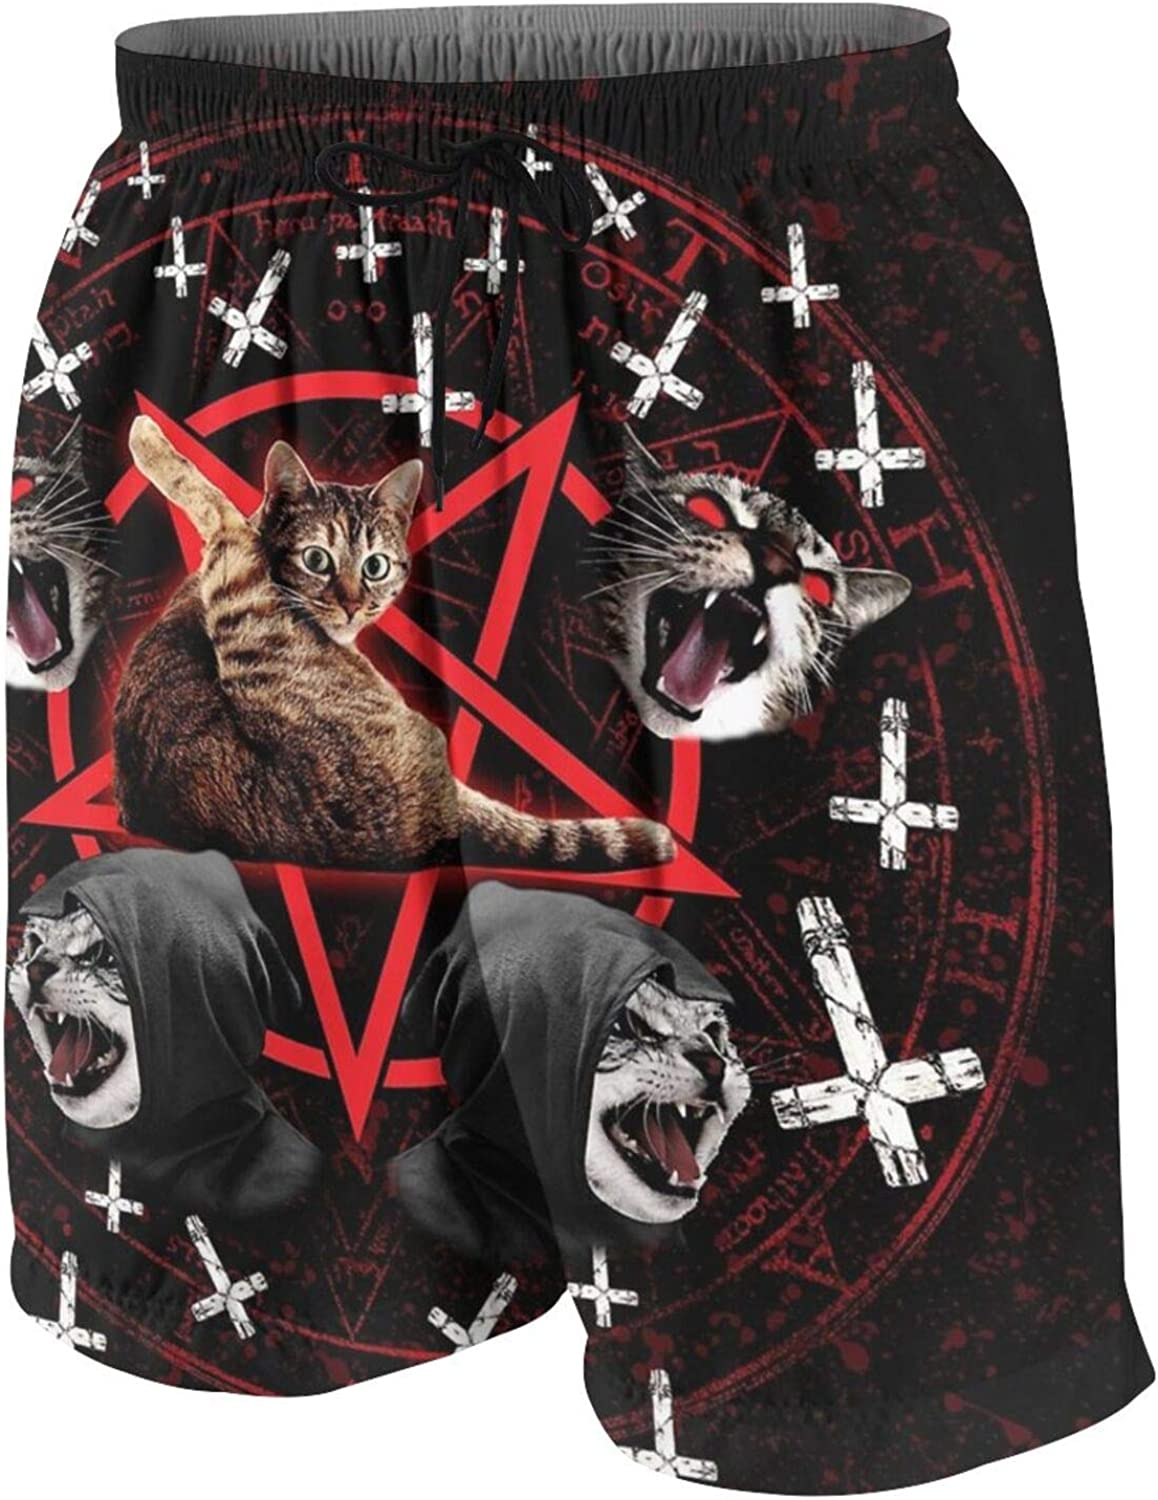 Pentagram Satanic Cats Death Black Metal Swim Trunks Quick Dry Beach Board Shorts Bathing Suit with Pockets for Teen Boys